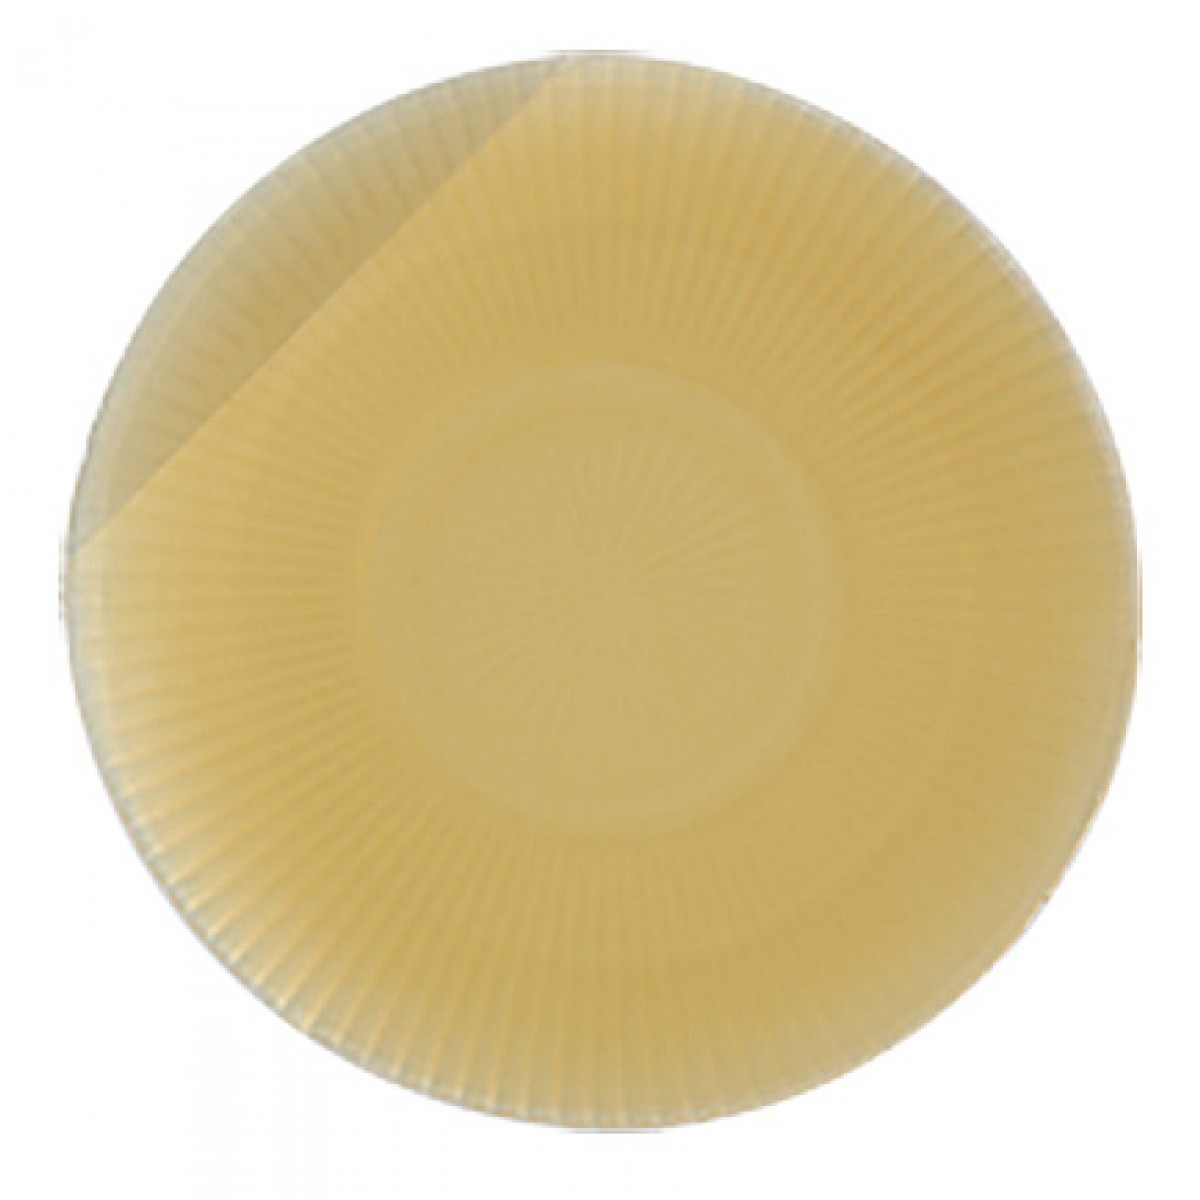 Placa 0-25MM 27MM Easiflex Pediátrico 14308/17829 - (Coloplast)